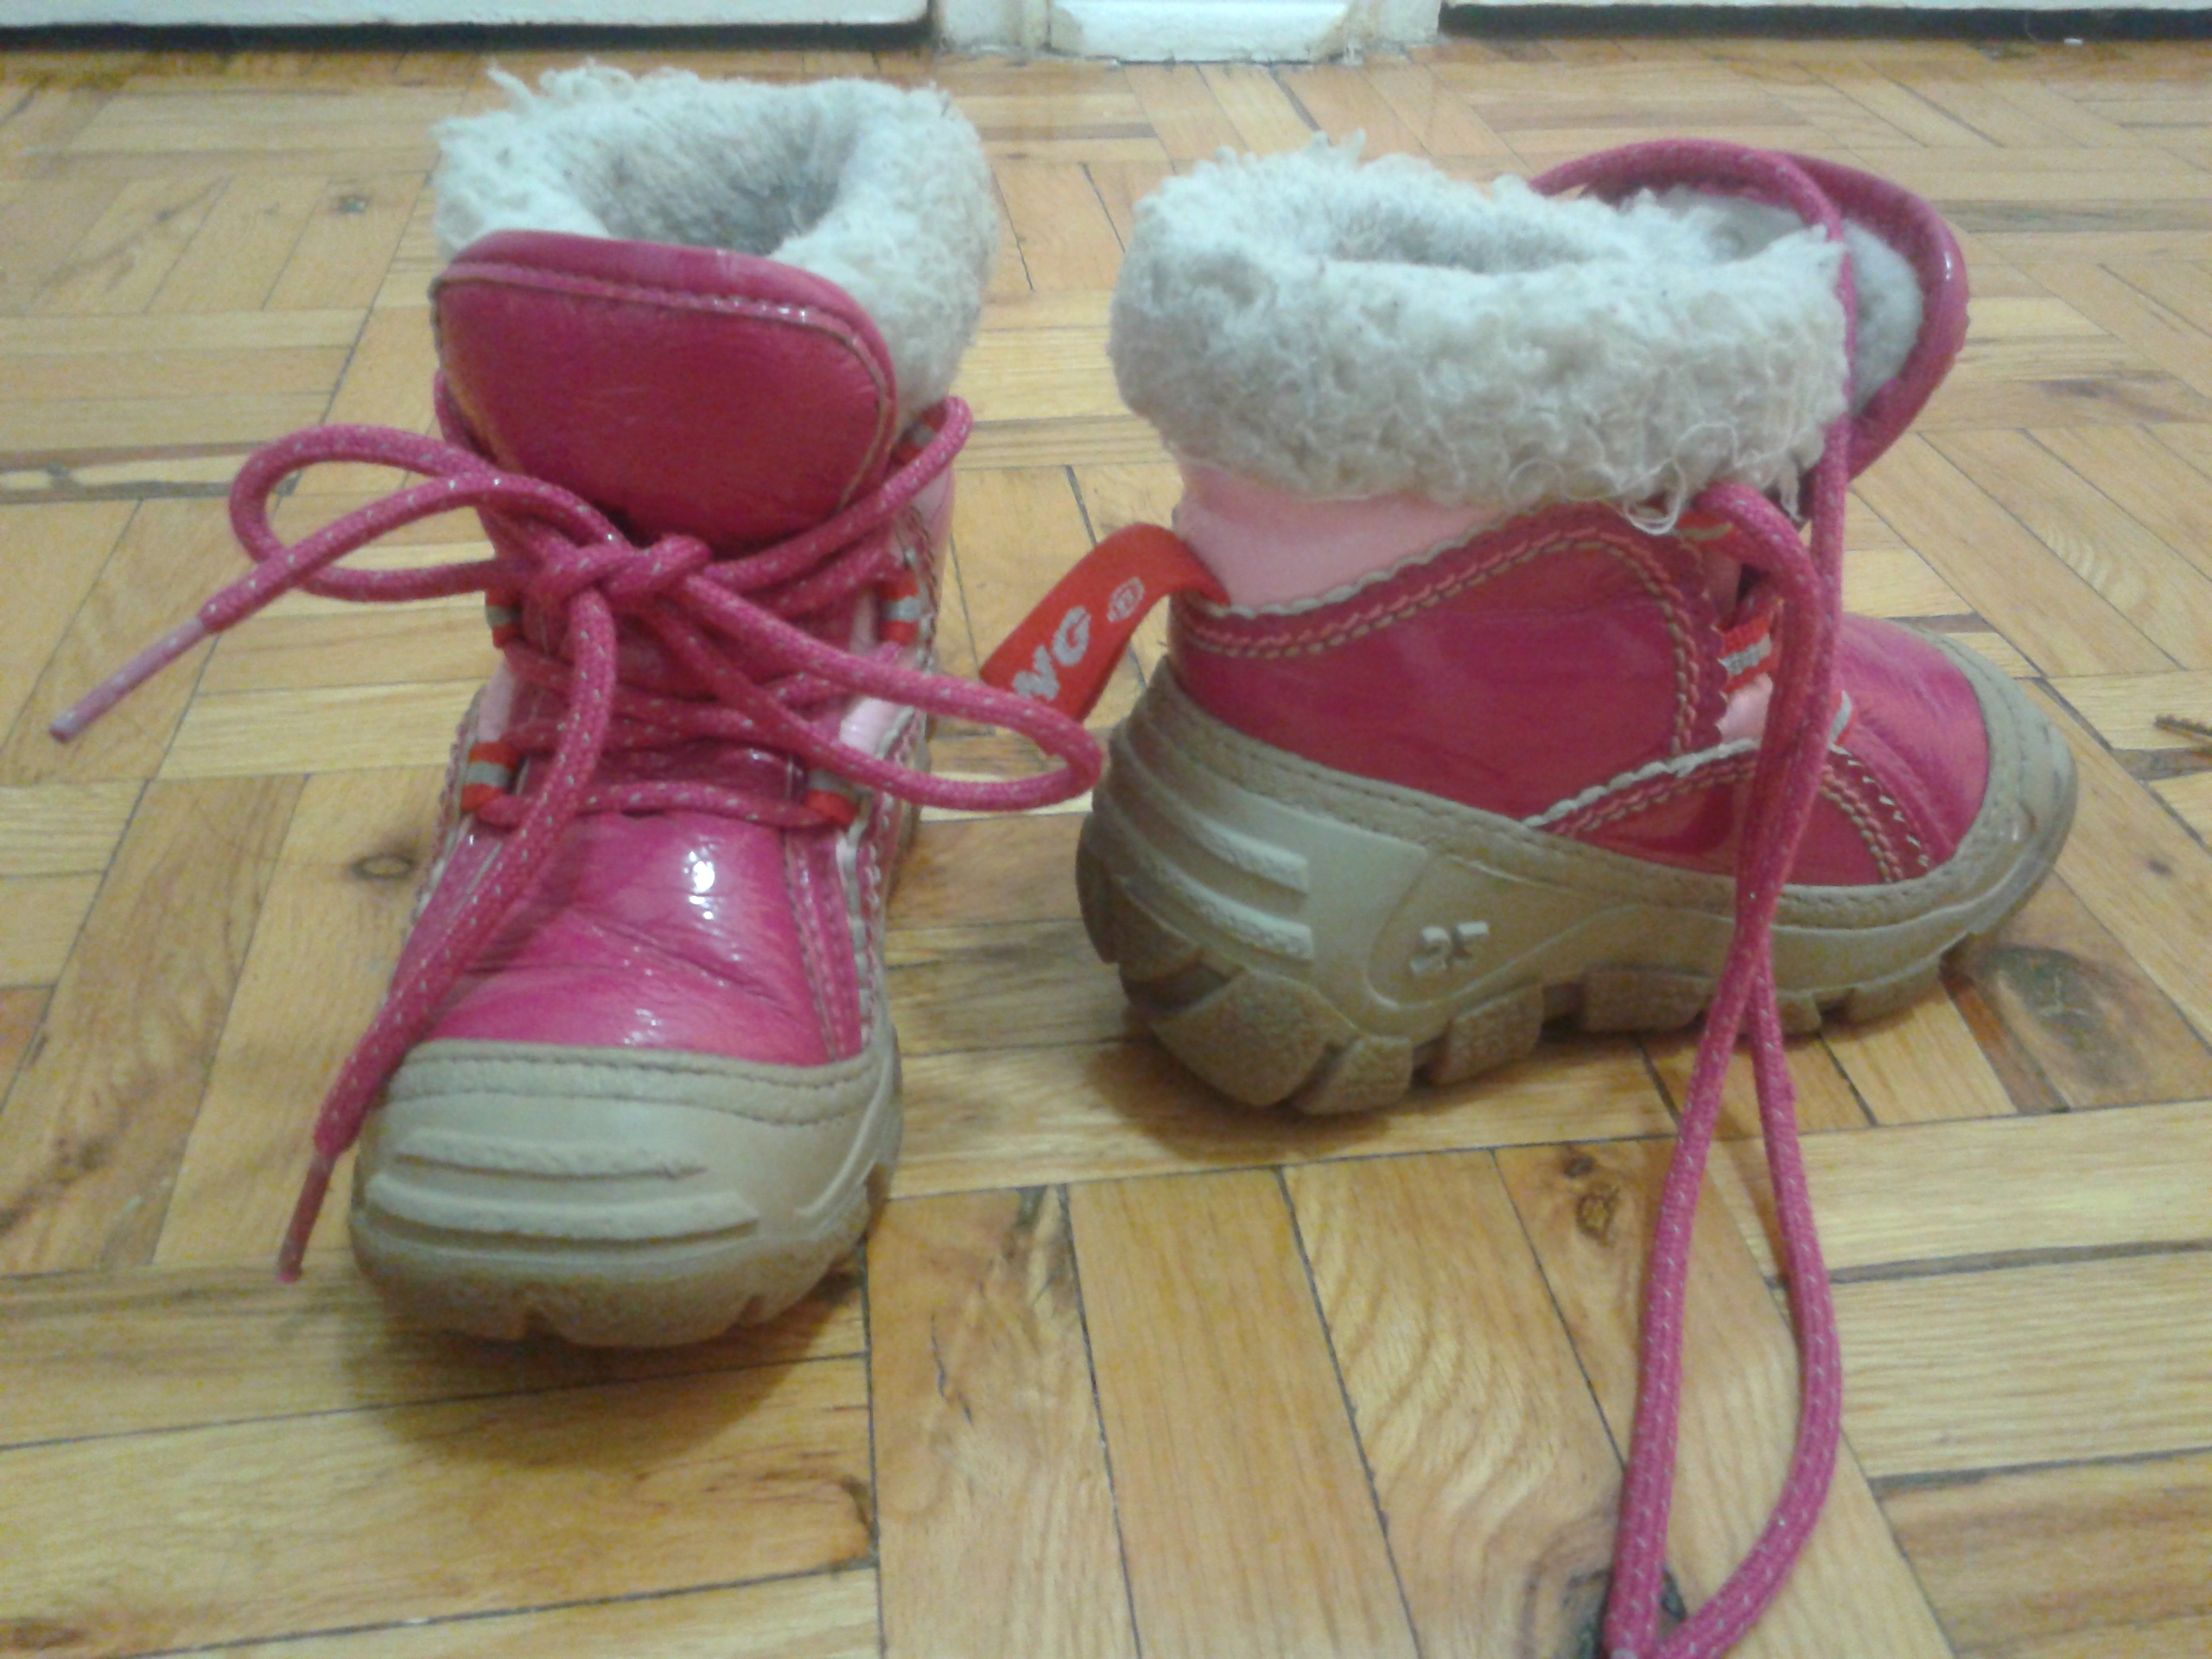 Olang toddlers boots,size 23 or 7.